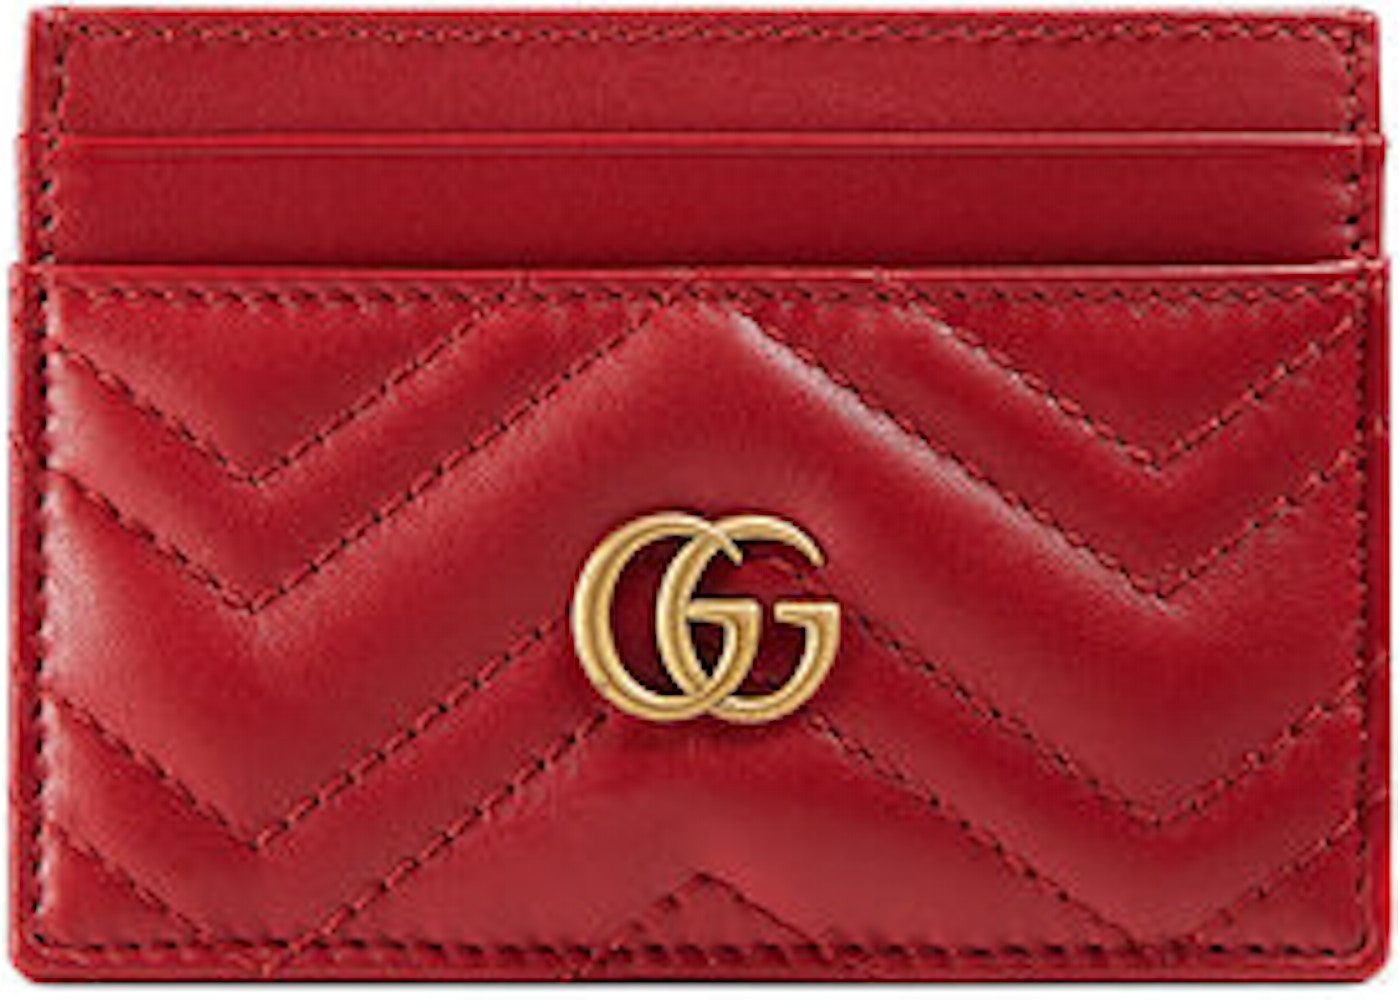 separation shoes 1c33b f21a6 Gucci Marmont Card Case Monogram Matelasse GG Hibiscus Red